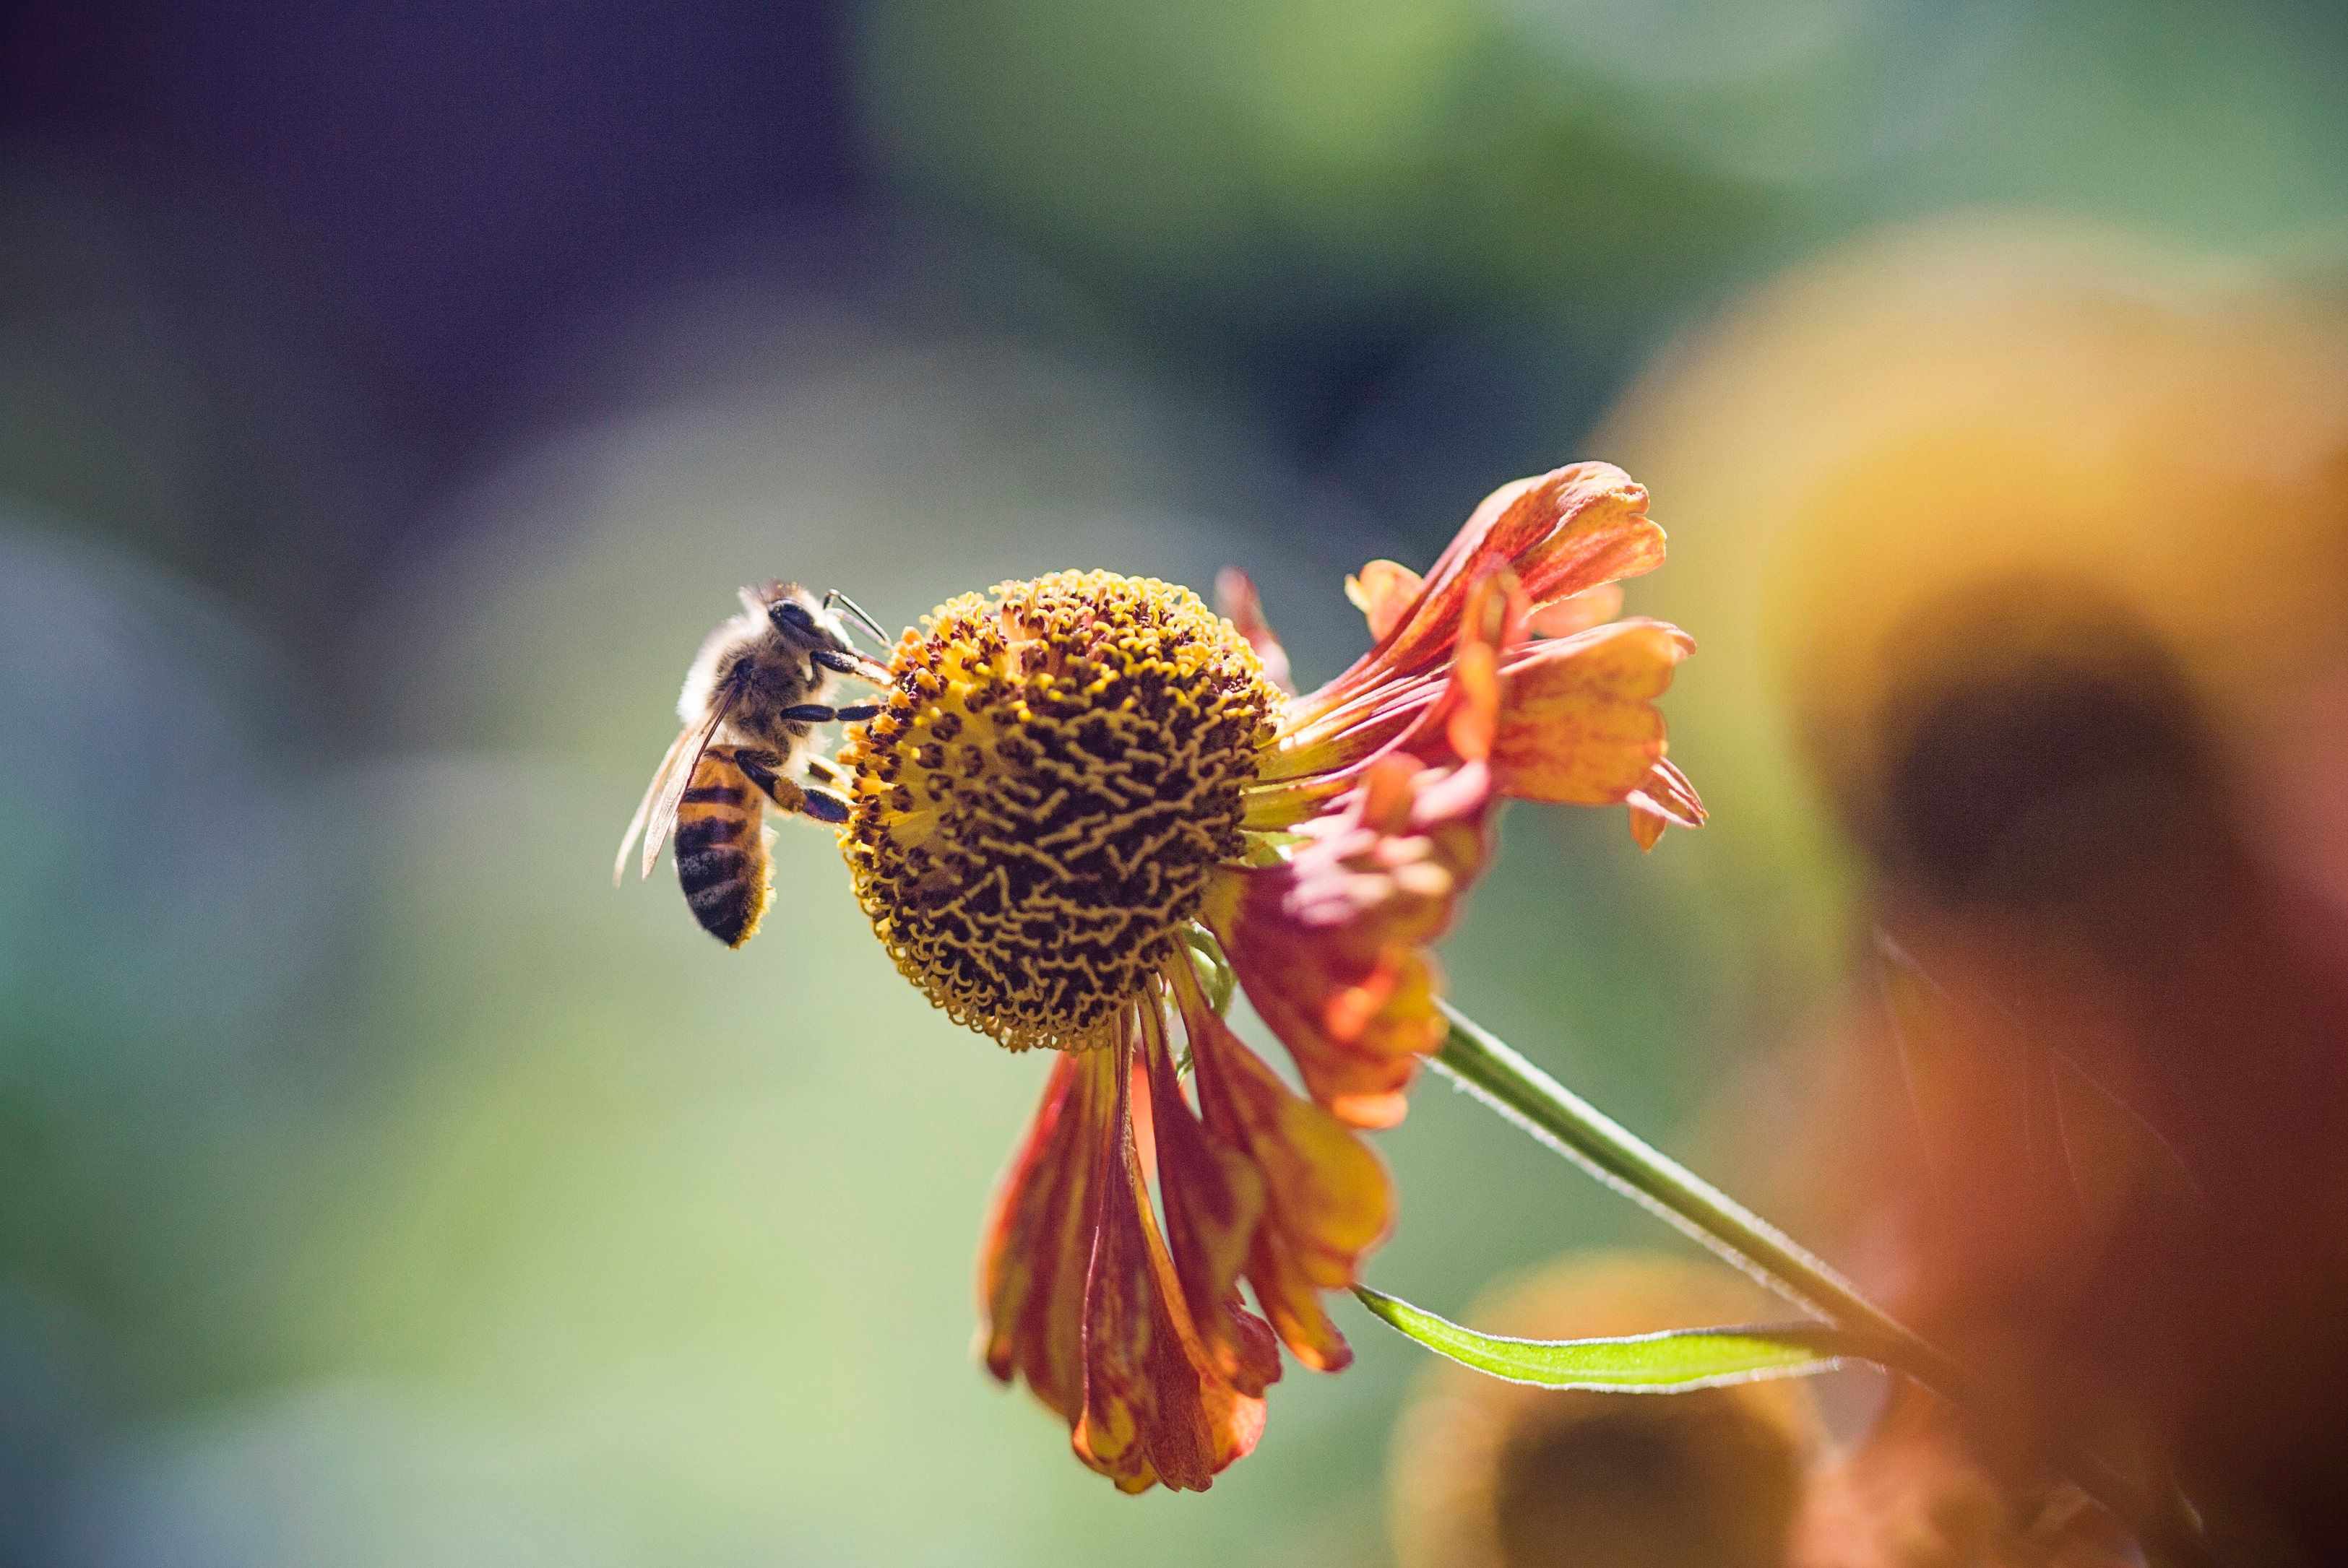 A honeybee perches on a